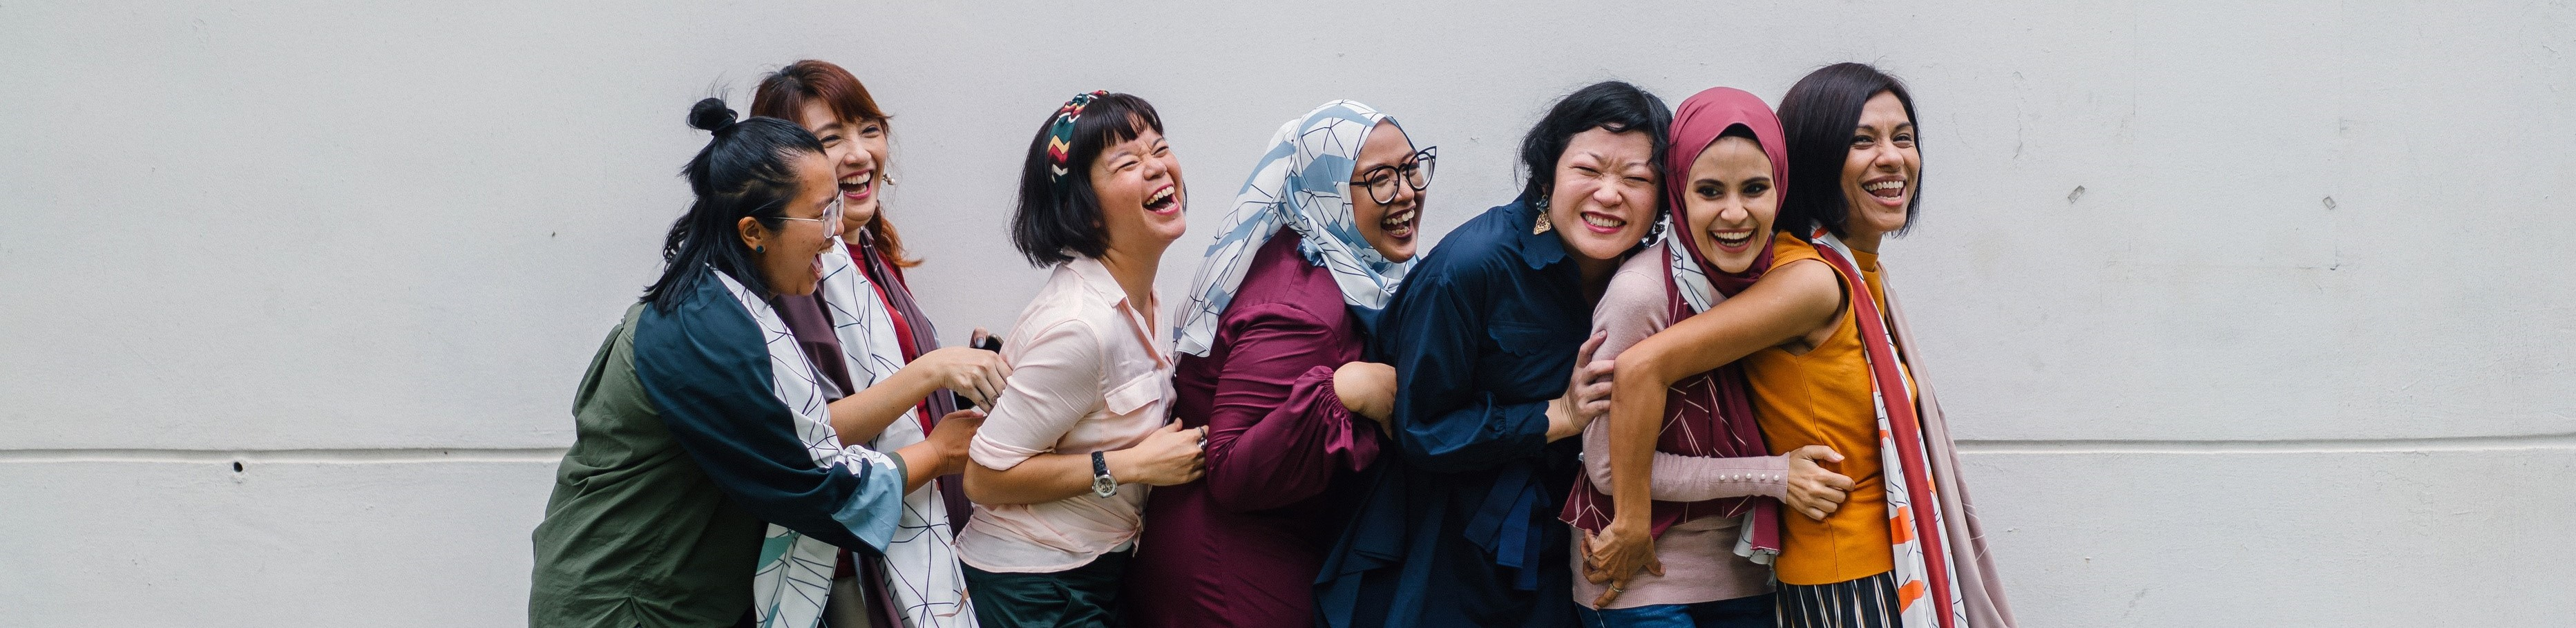 Photo of a group of multiethnic women